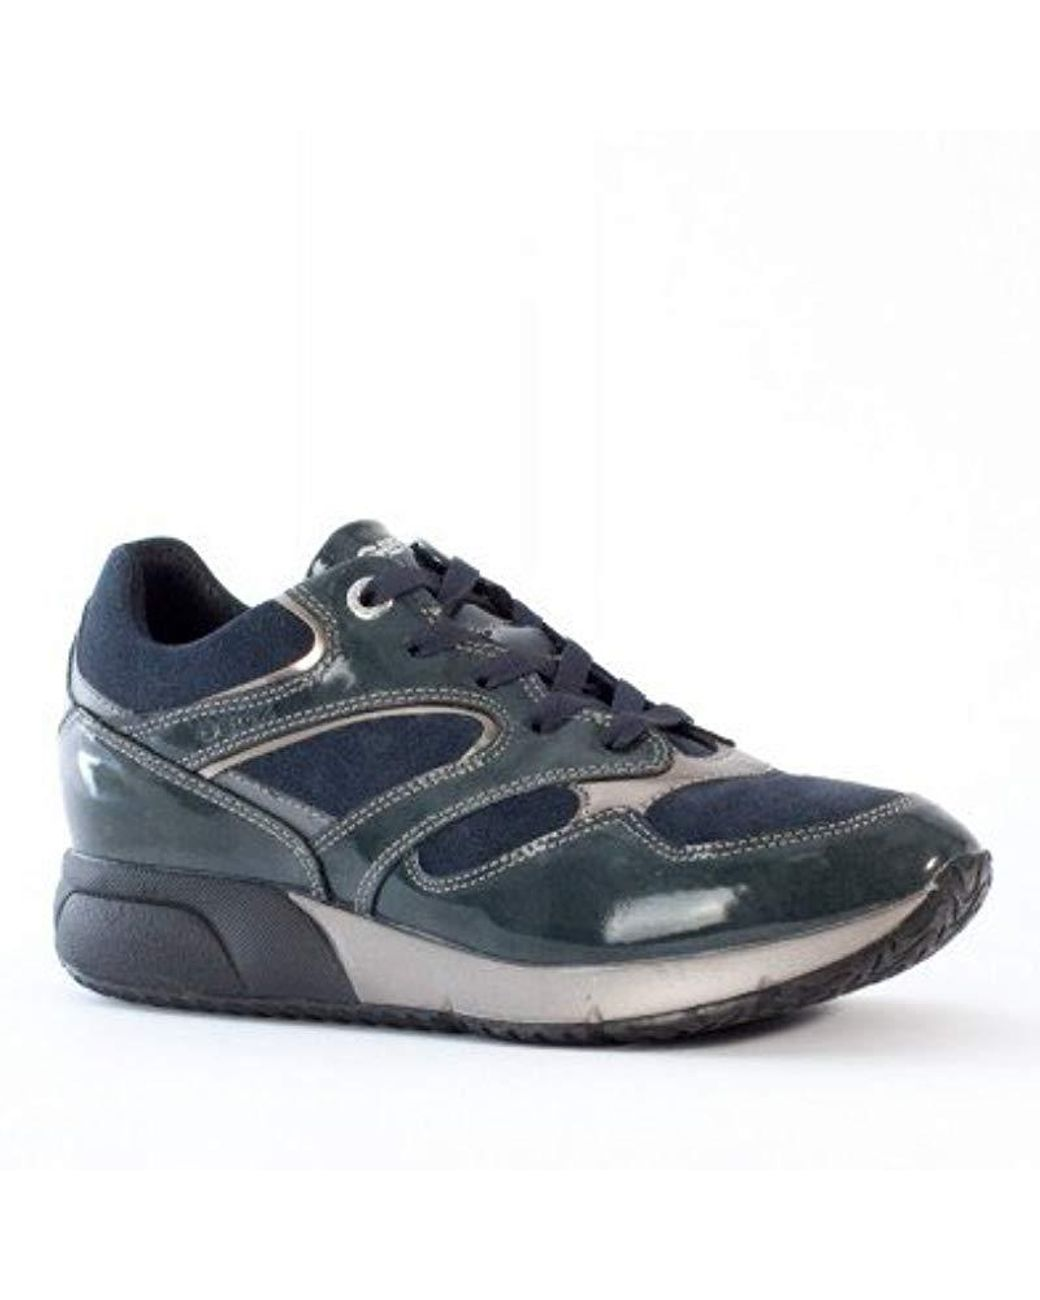 Geox Agyleah Trainers Women Black Shoes Low top High tech